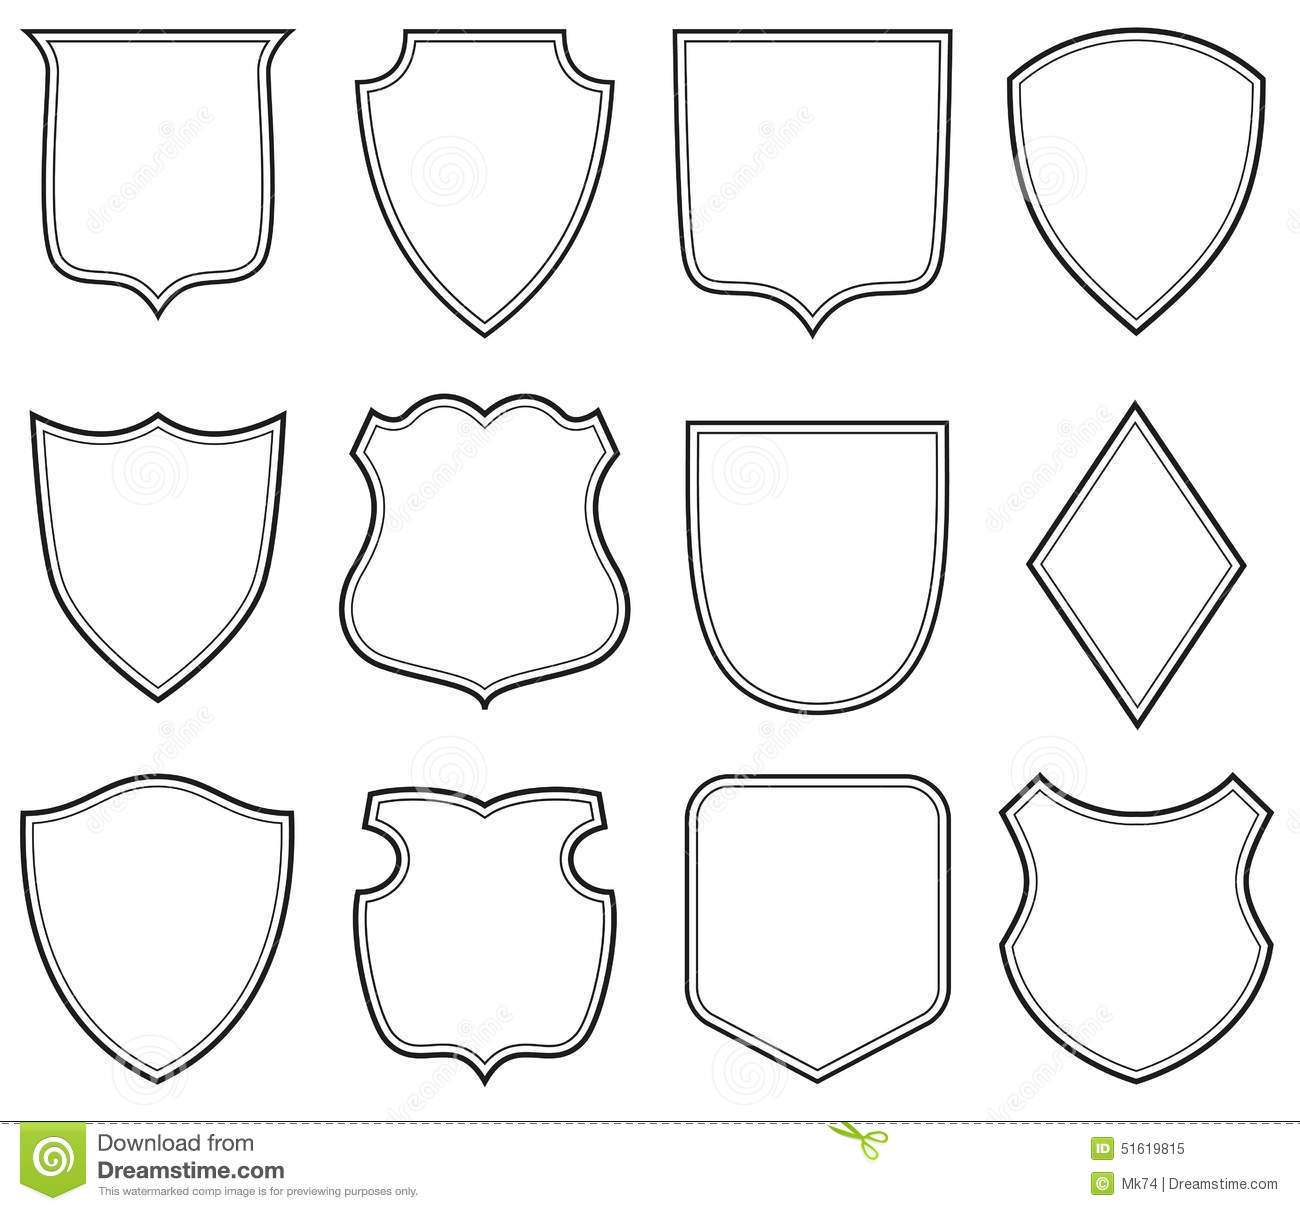 The gallery for heraldic shield shapes for Military patch template